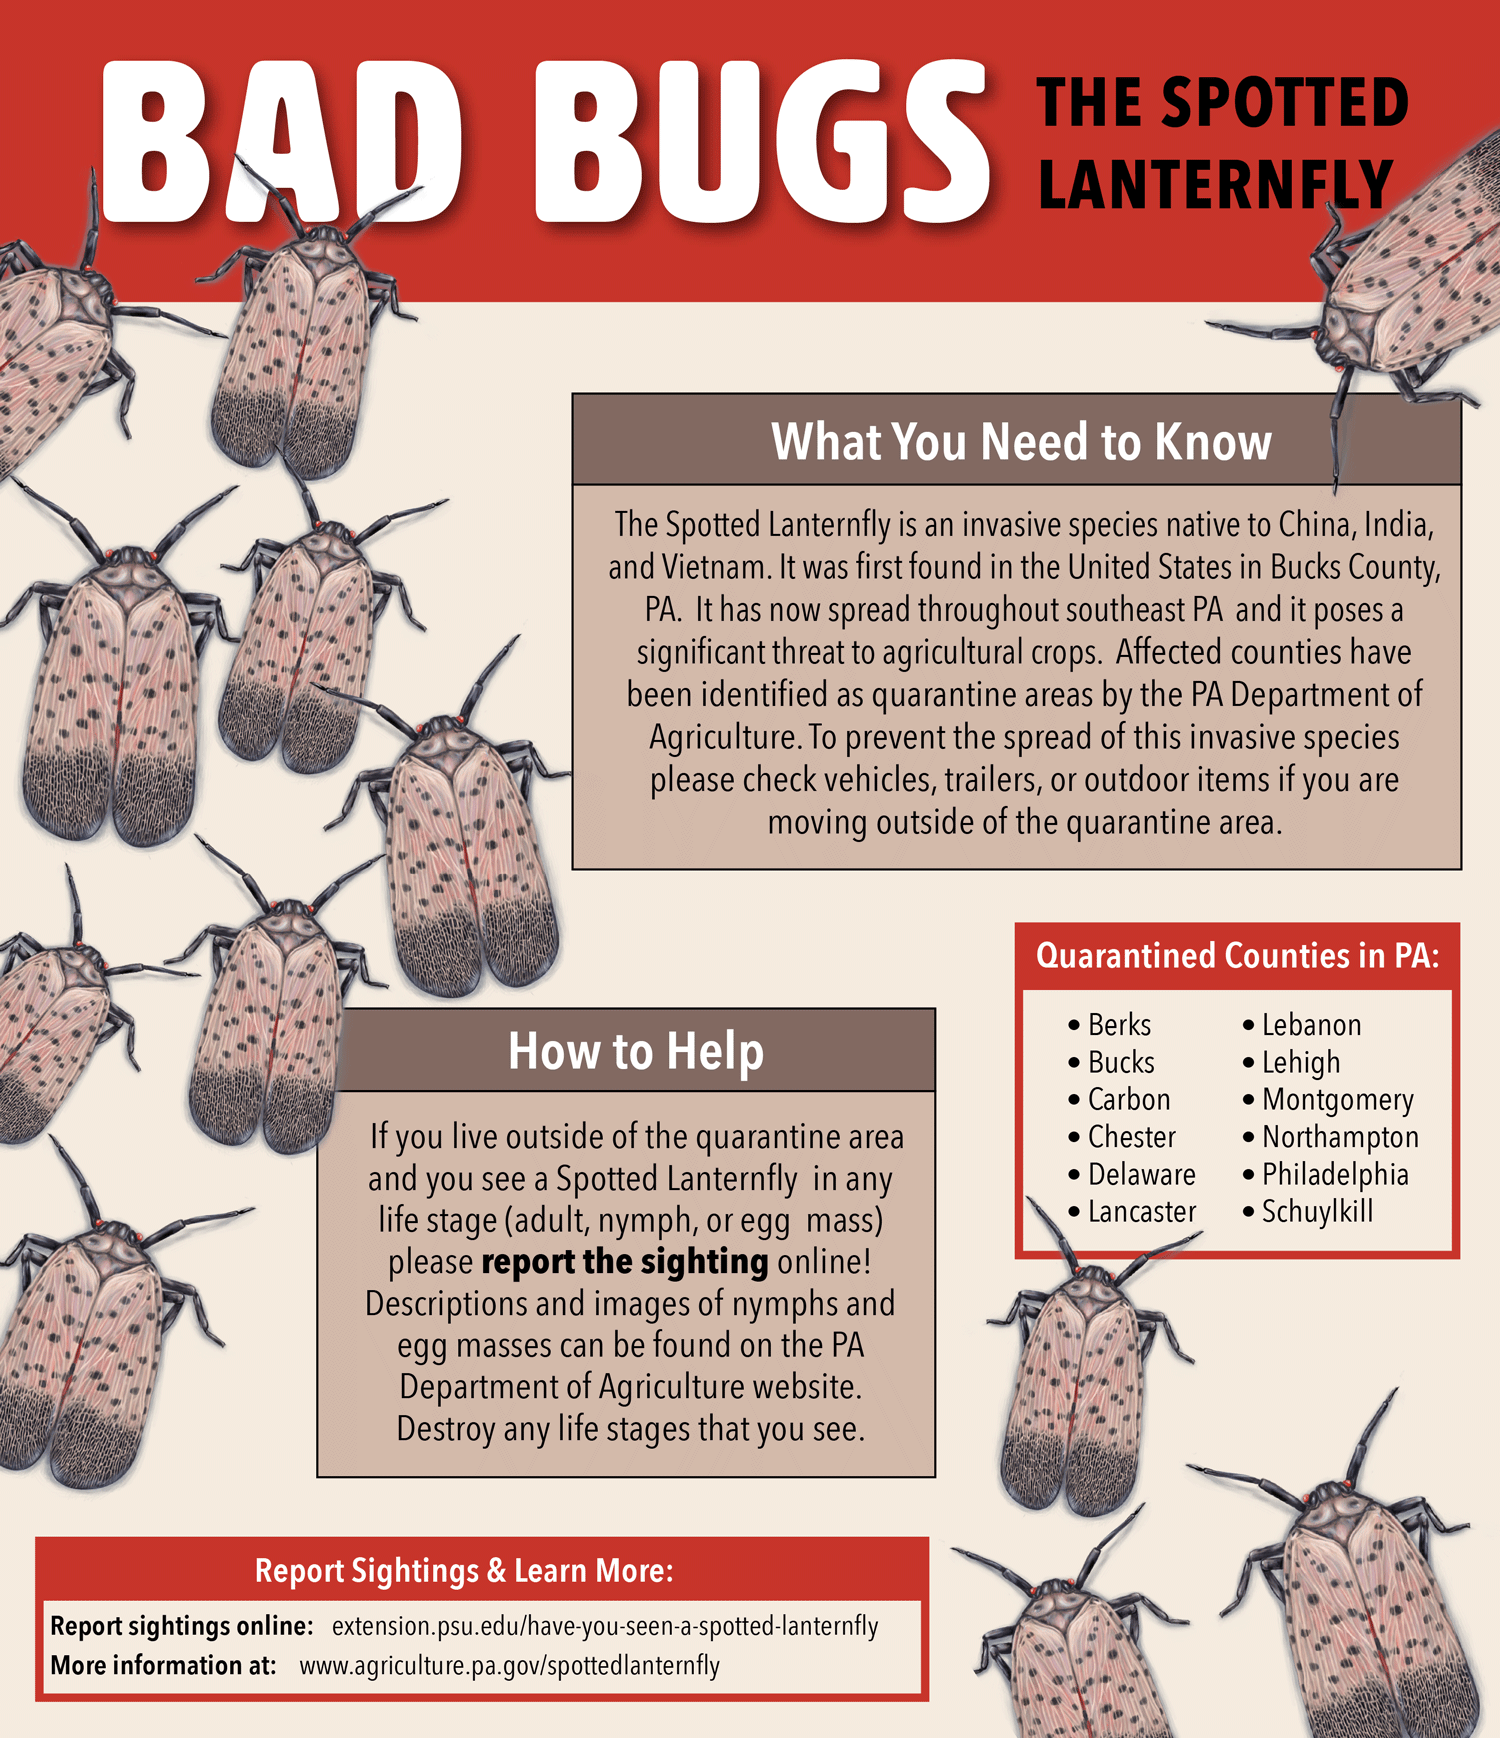 Educational poster on the invasive Spotted Lanternfly species by Kara Perilli